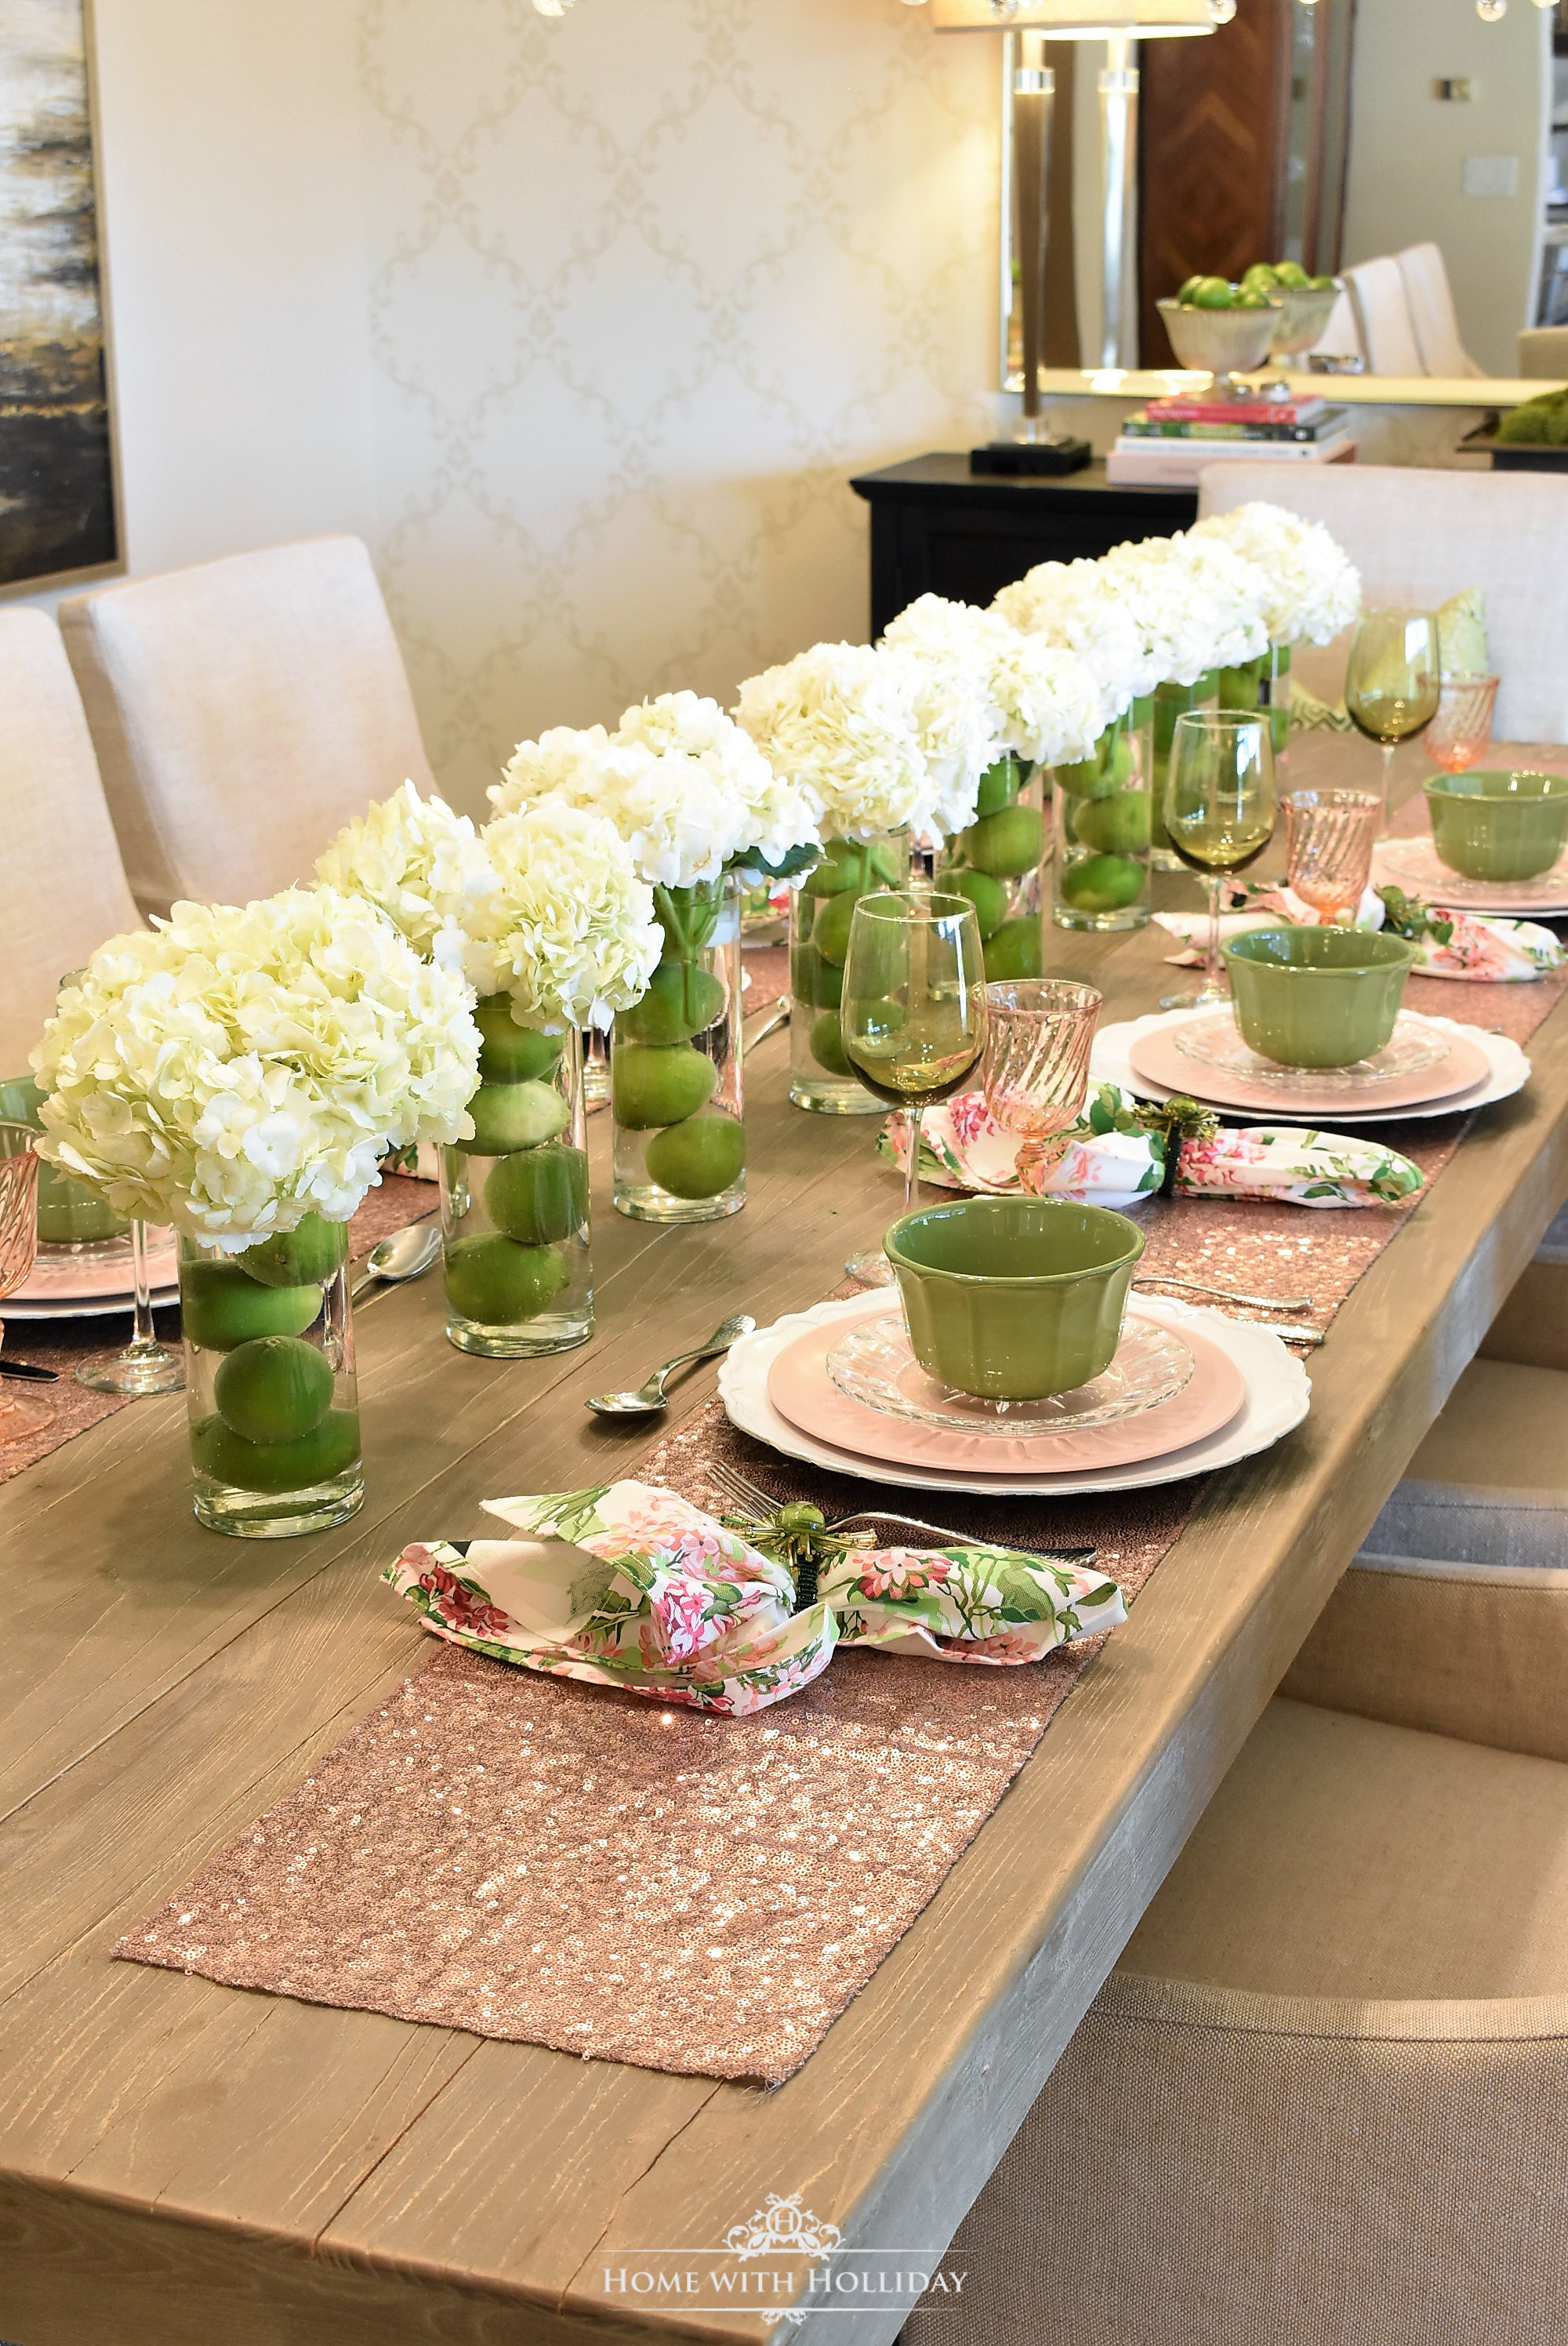 My Top Ten Posts of 2018 - Hydrangea Centerpiece for Spring Table Setting - Home with Holliday